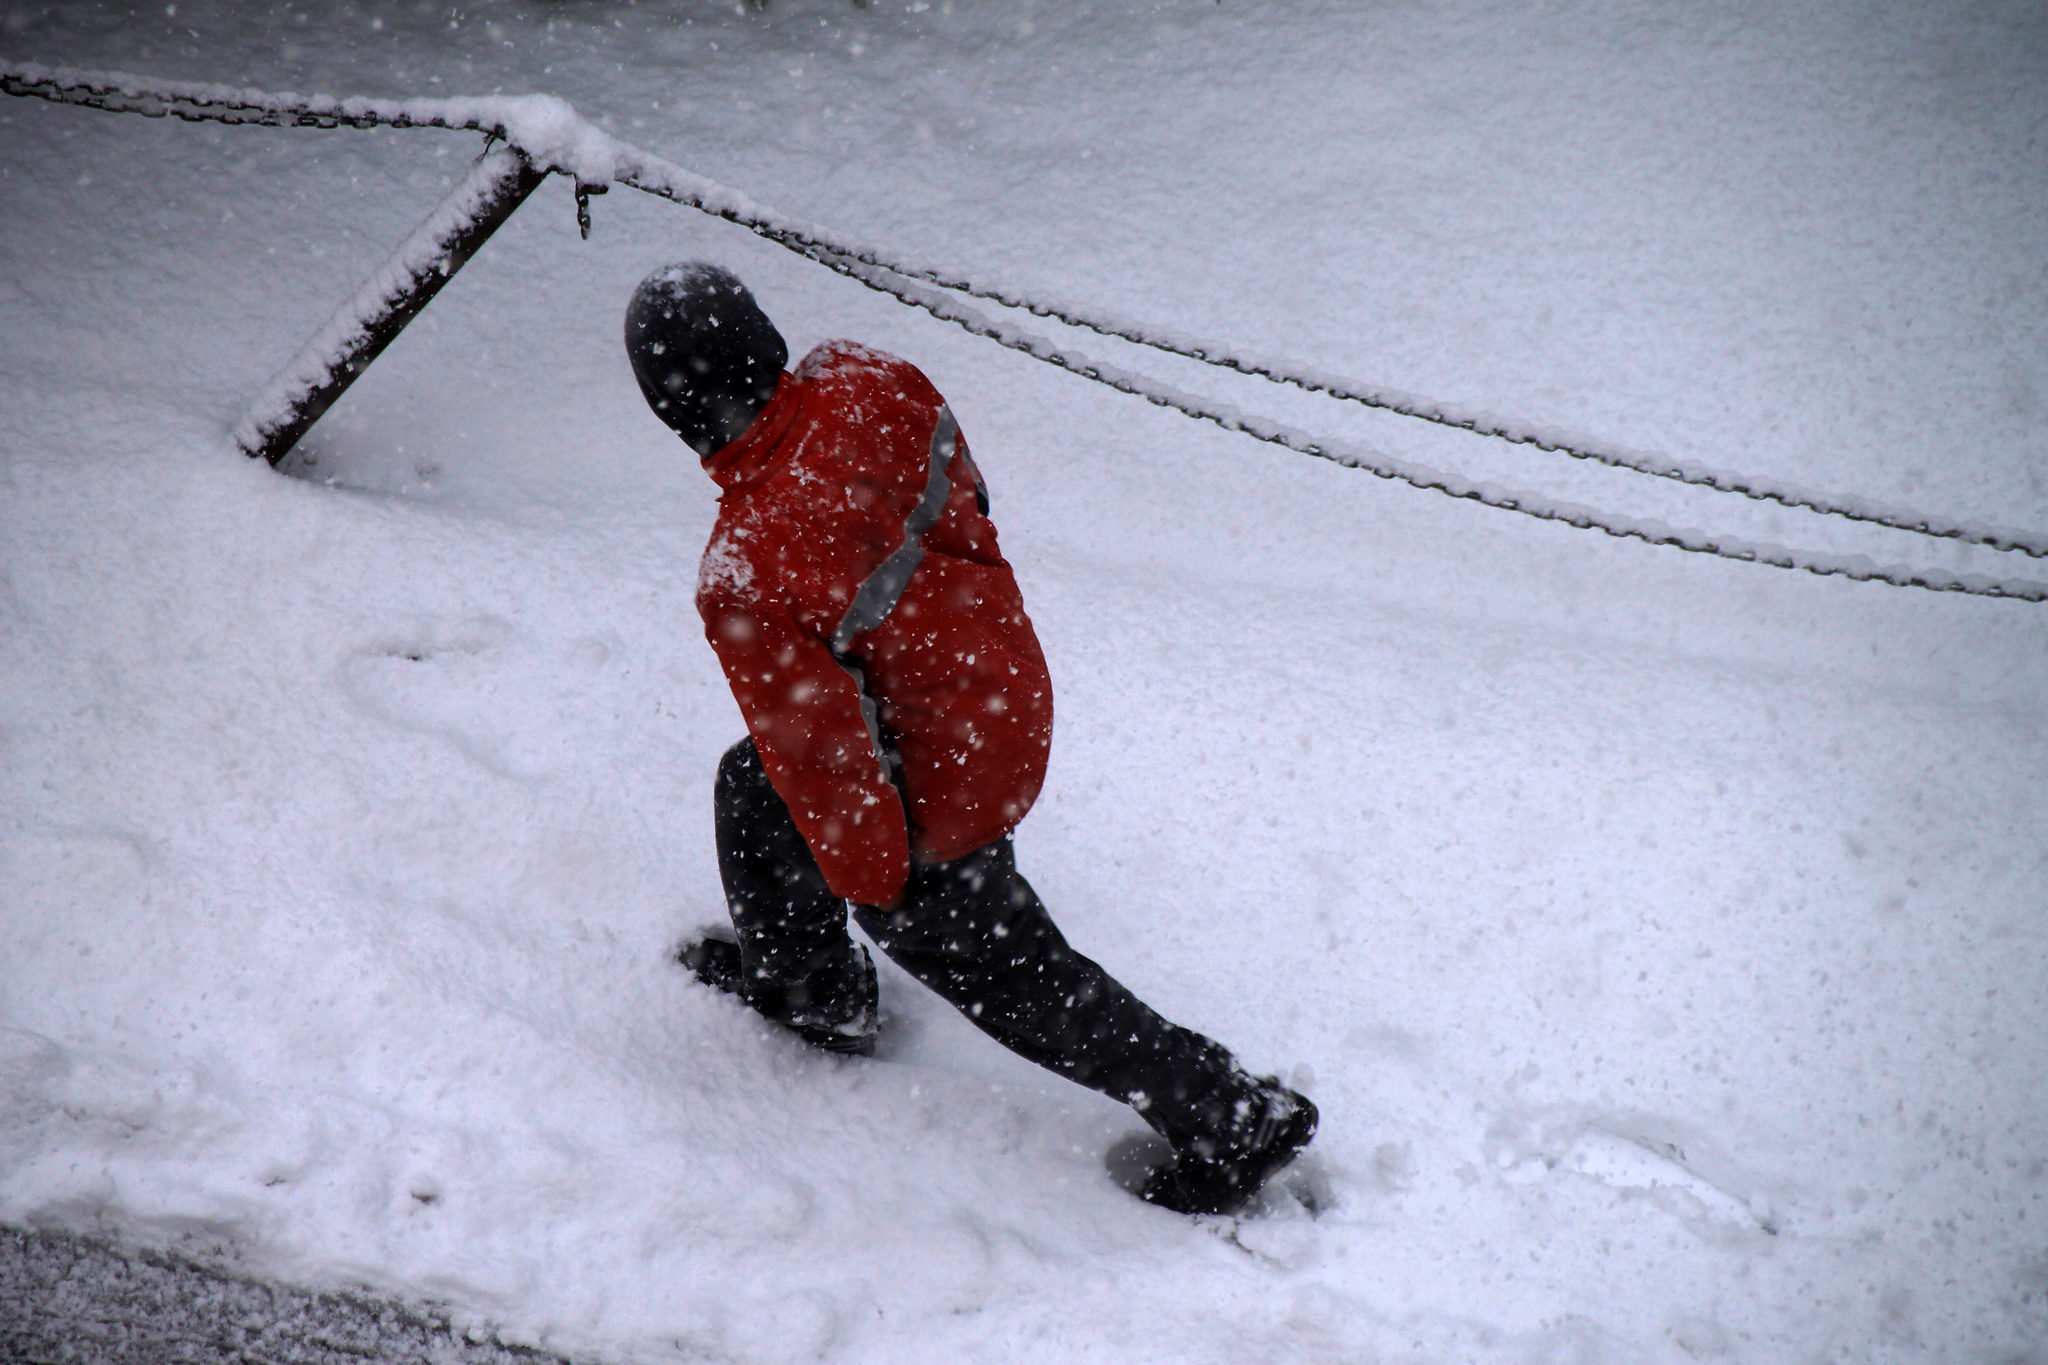 A major snow storm is headed for Toronto. (Courtesy rabiem22/Creative Commons)